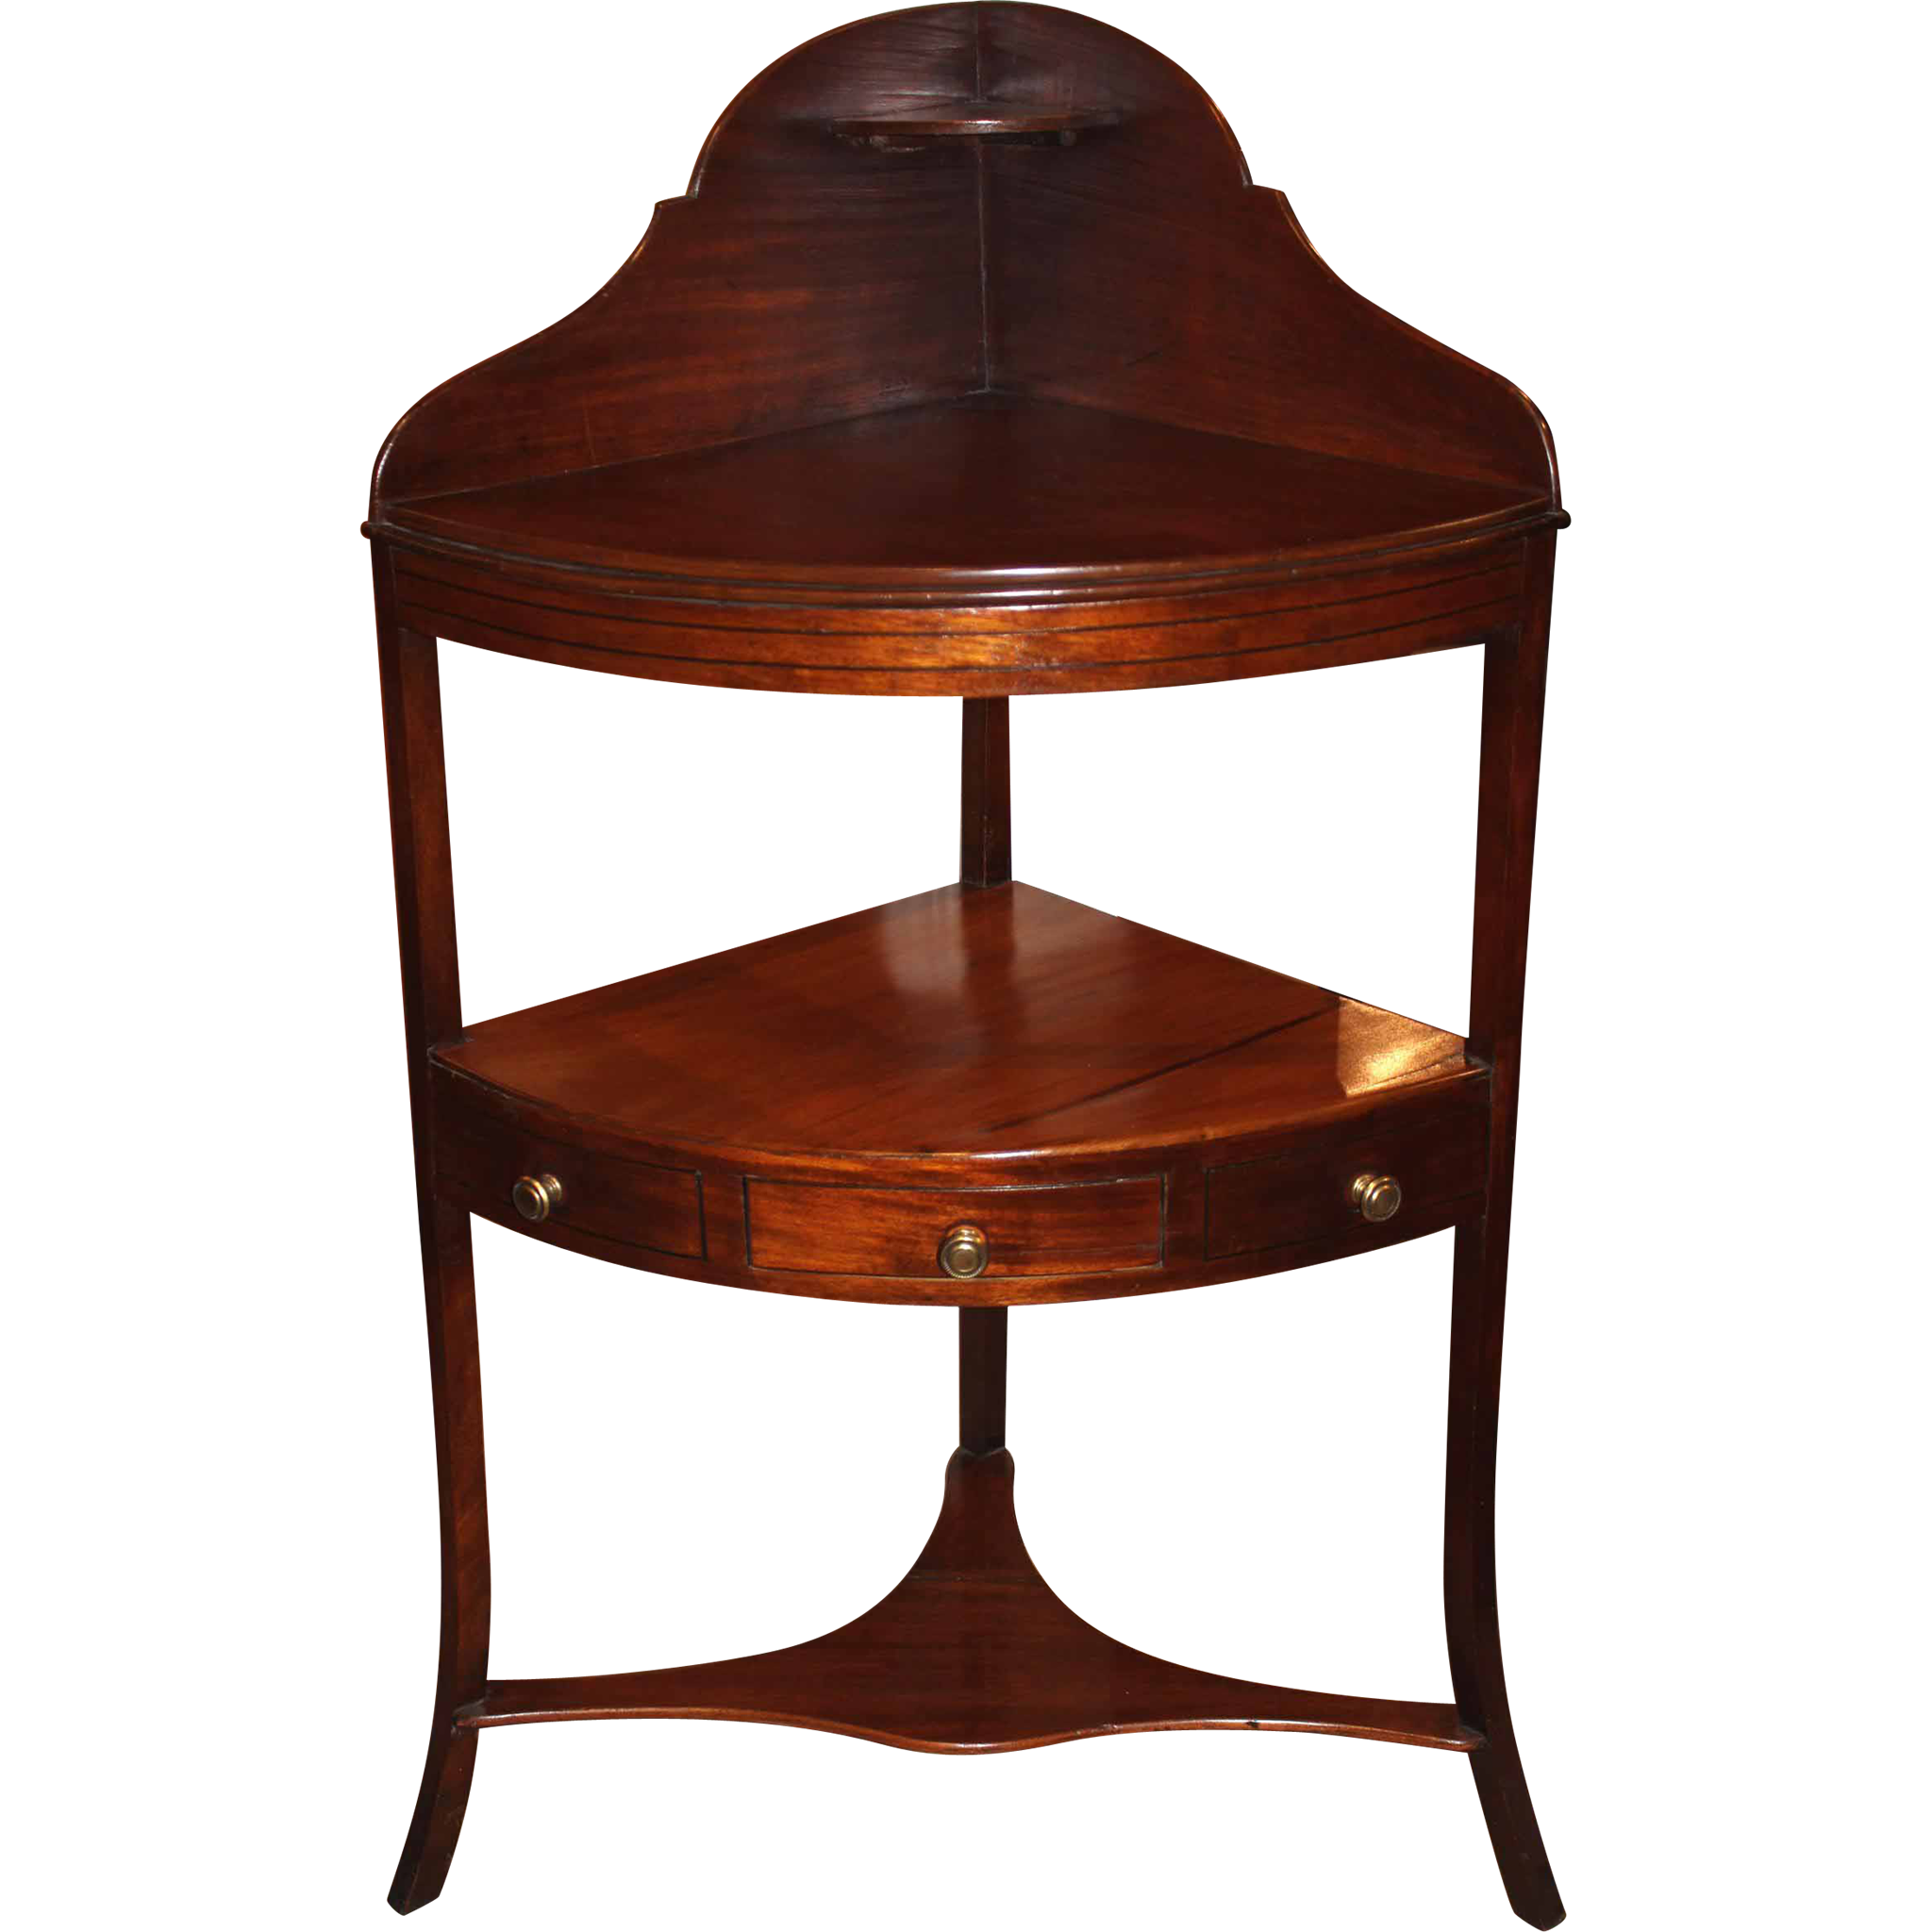 19th c English Regency Mahogany Corner Wash Stand